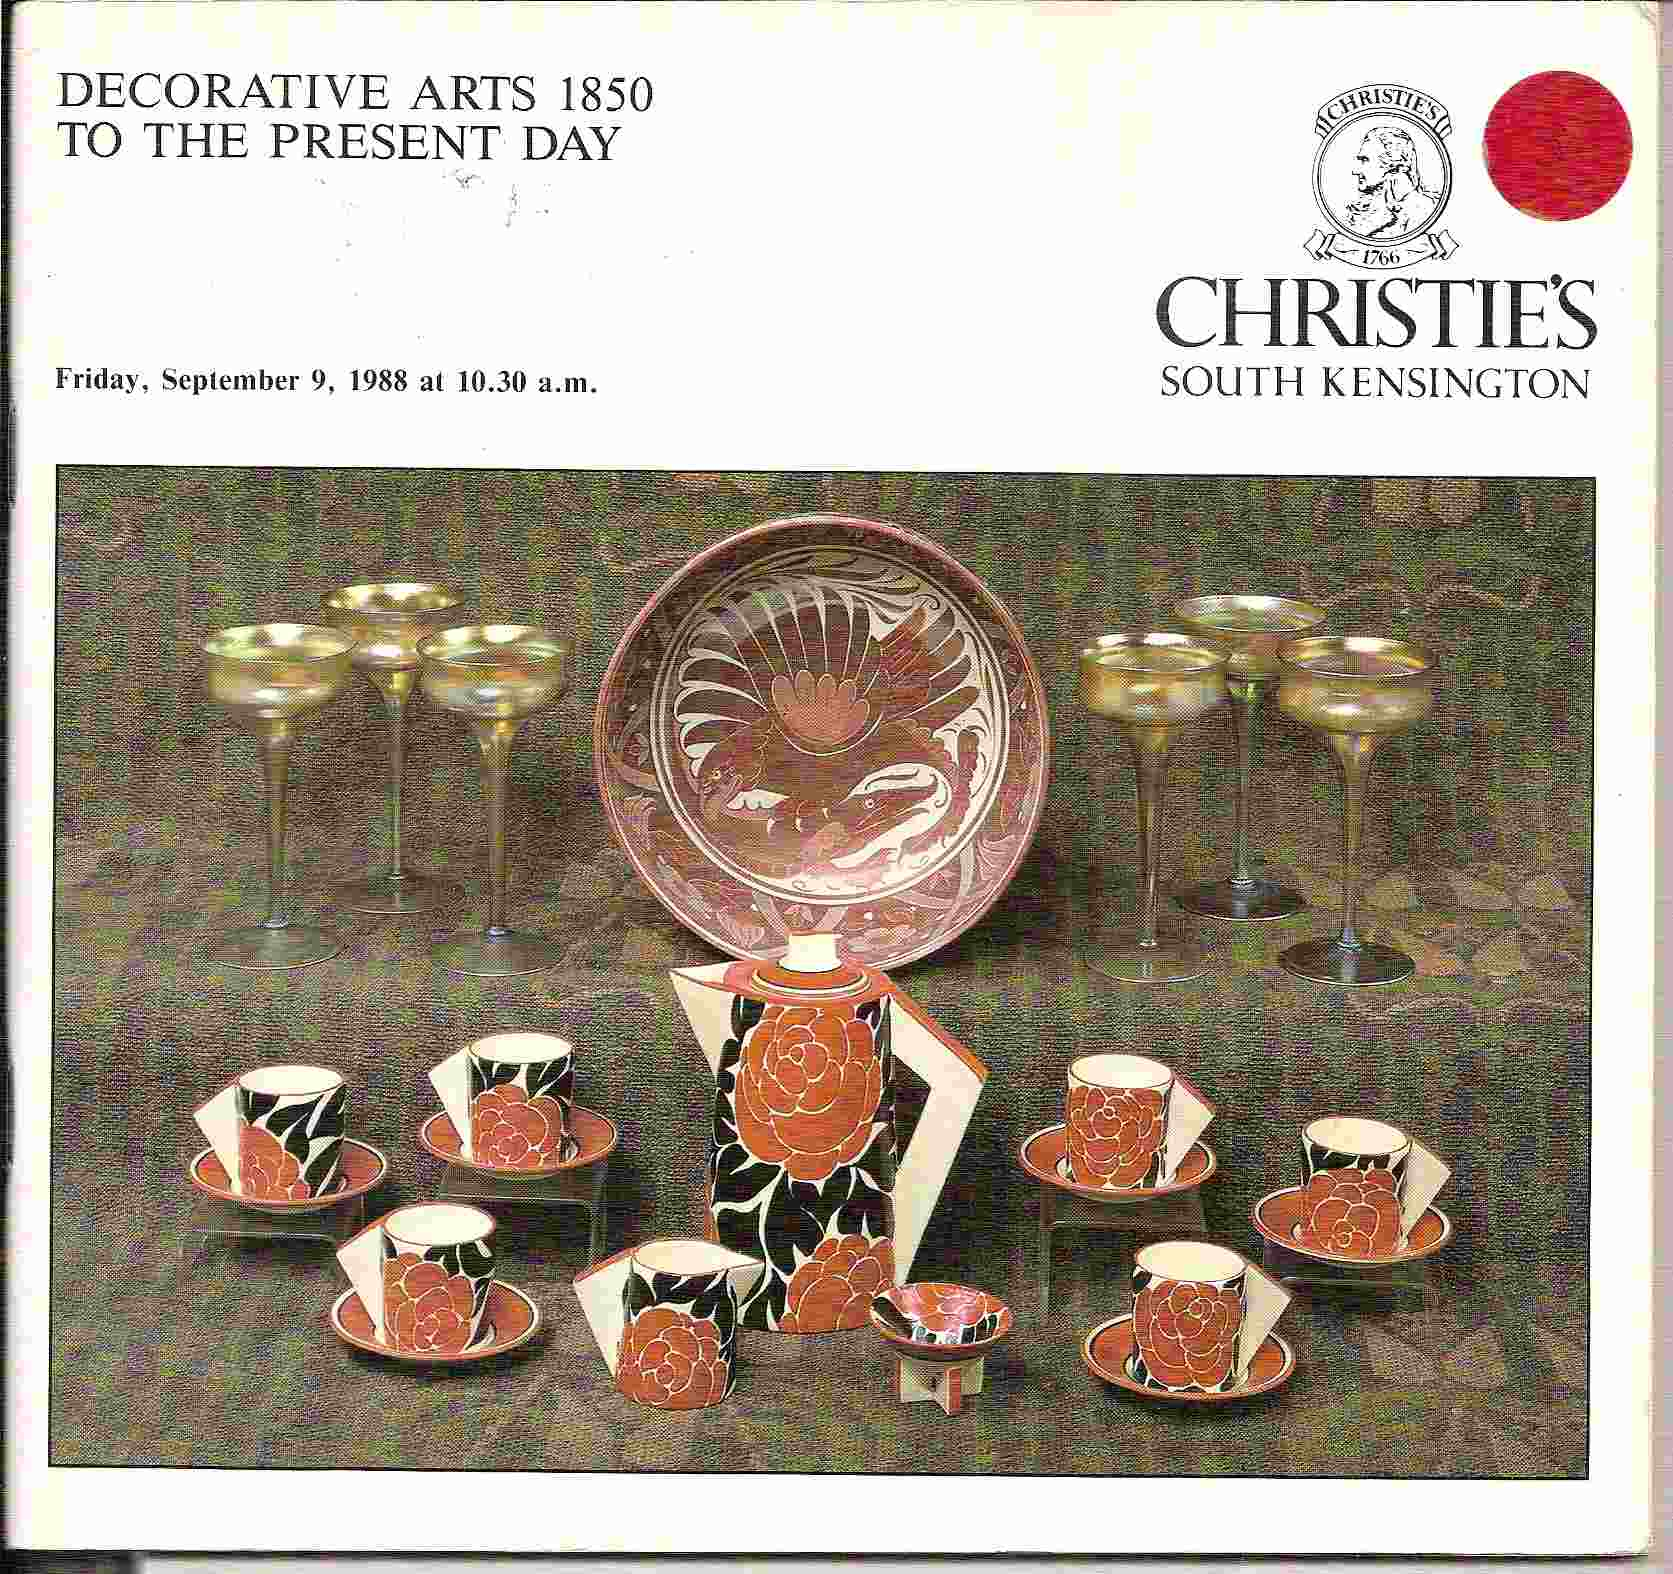 Image for DECORATIVE ARTS 1850 TO THE PRESENT DAY Friday, September 9, 1988